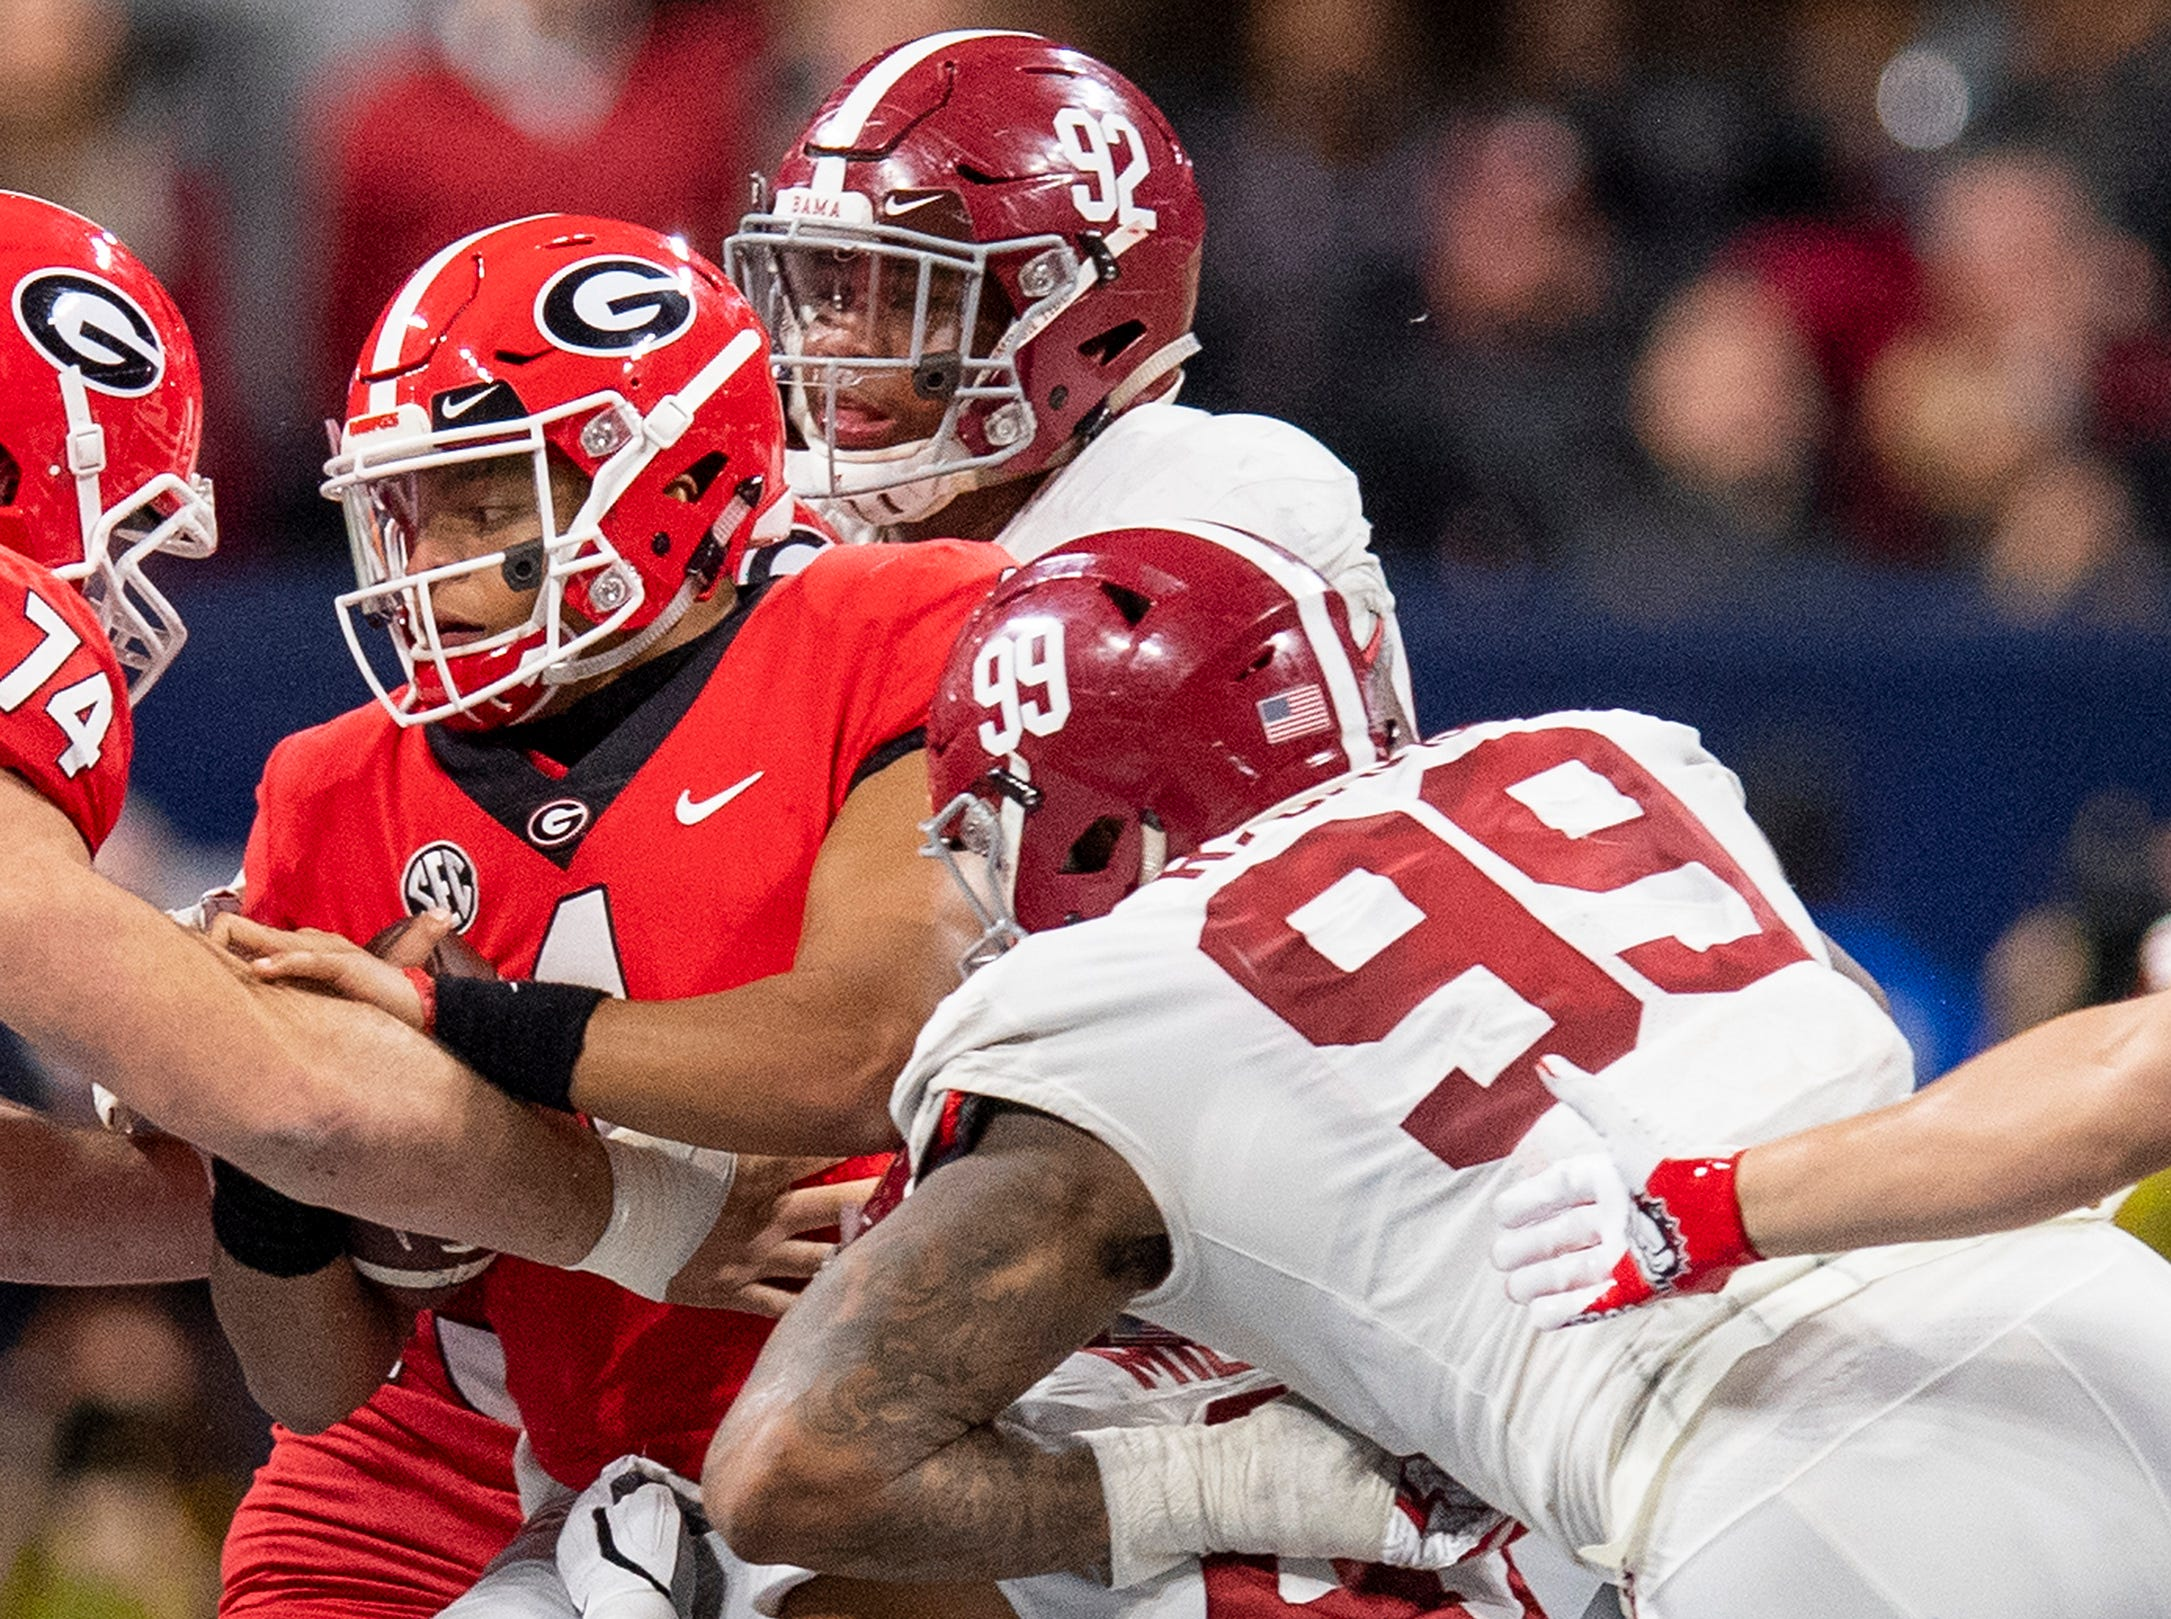 Georgia quarterback Justin Fields (1) is stopped on a fake punt by Alabama defenders in the SEC Championship Game at Mercedes Benz Stadium in Atlanta, Ga., on Saturday December 1, 2018.